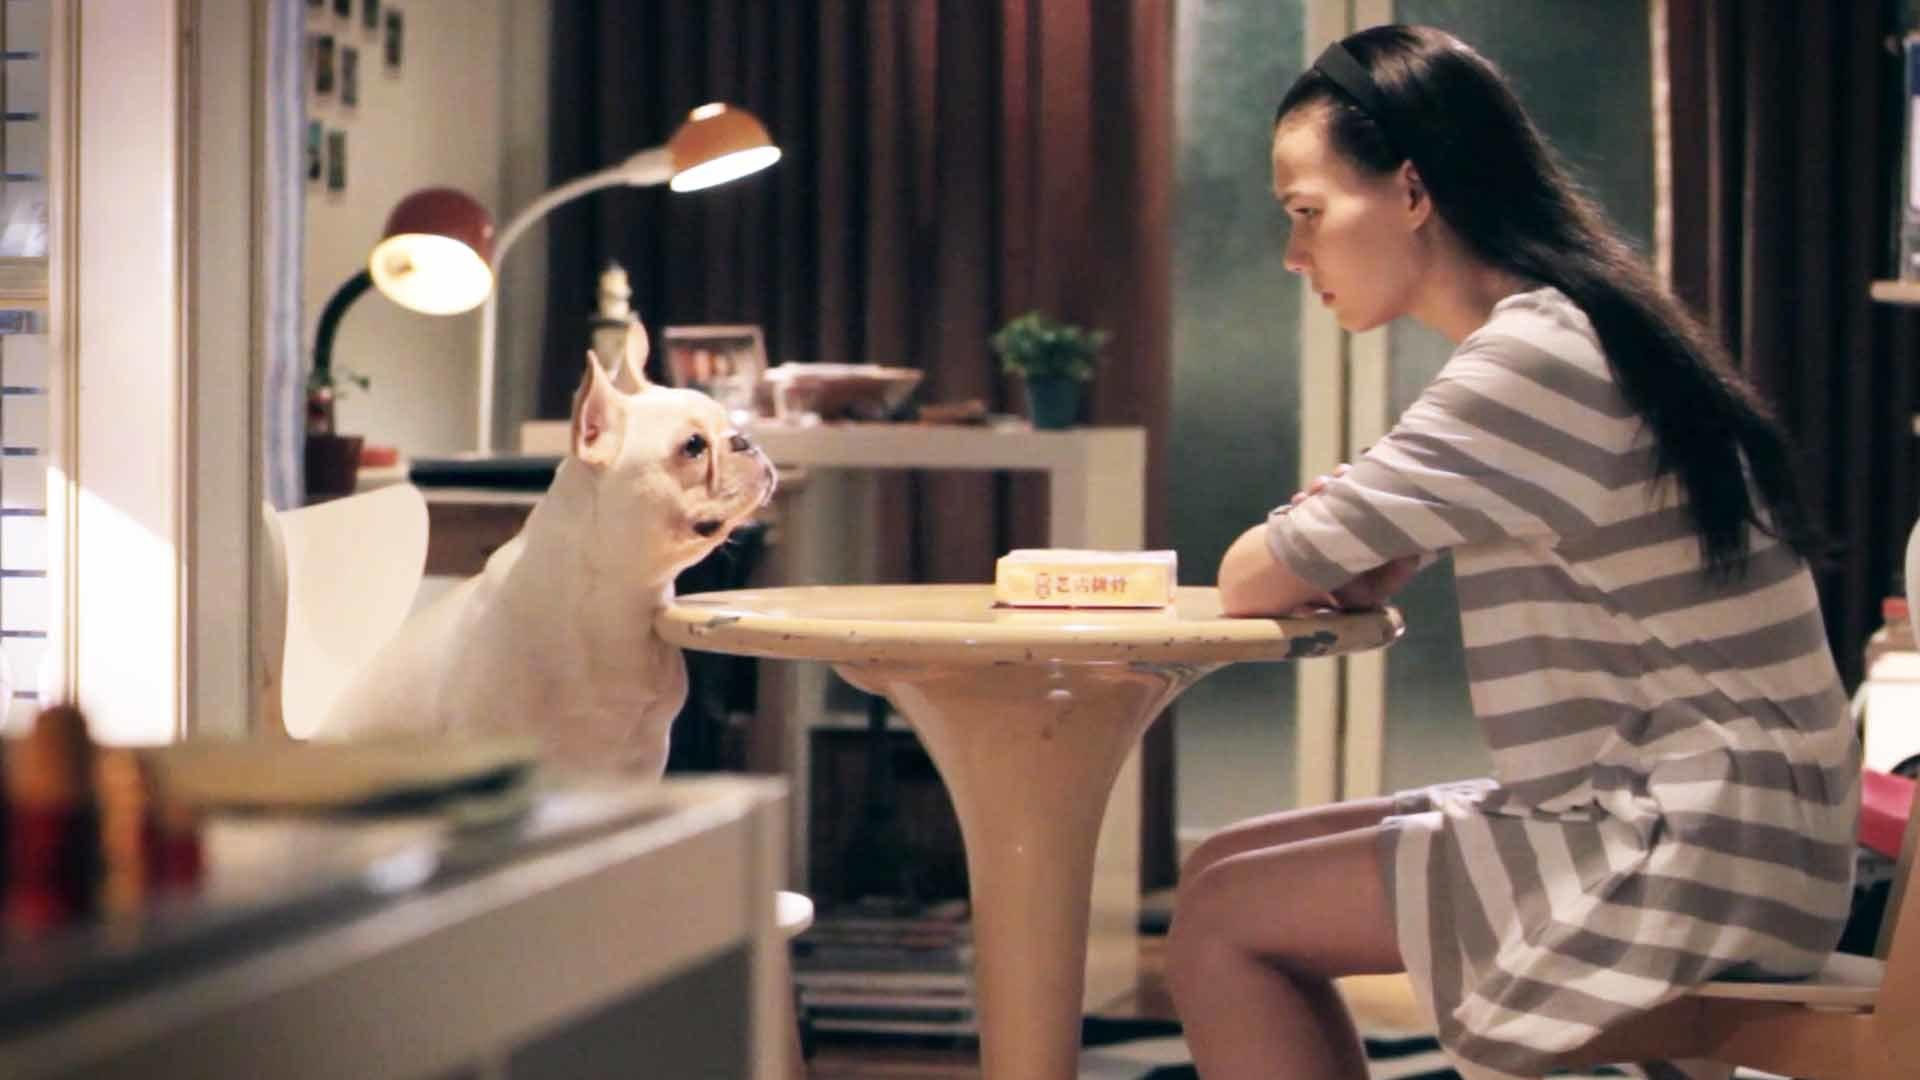 He's A Dog In My House (我的狗男友) by Shih-Han TSAO - Taiwan Comedy, Drama Short Film